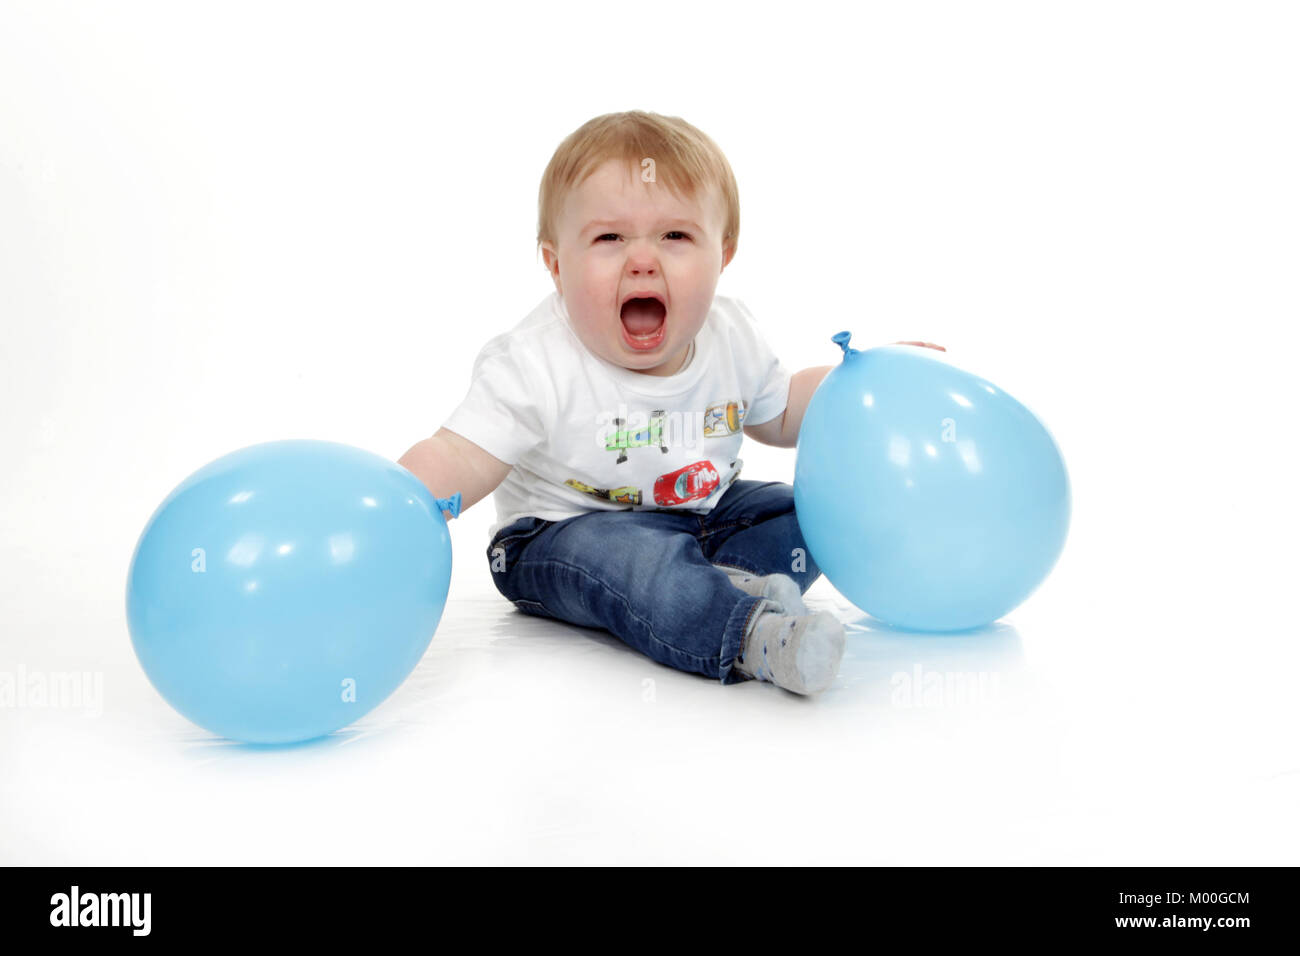 aggressive toddler, bad behaviour, temper tantrum, 1 year old boy, mental illness - Stock Image